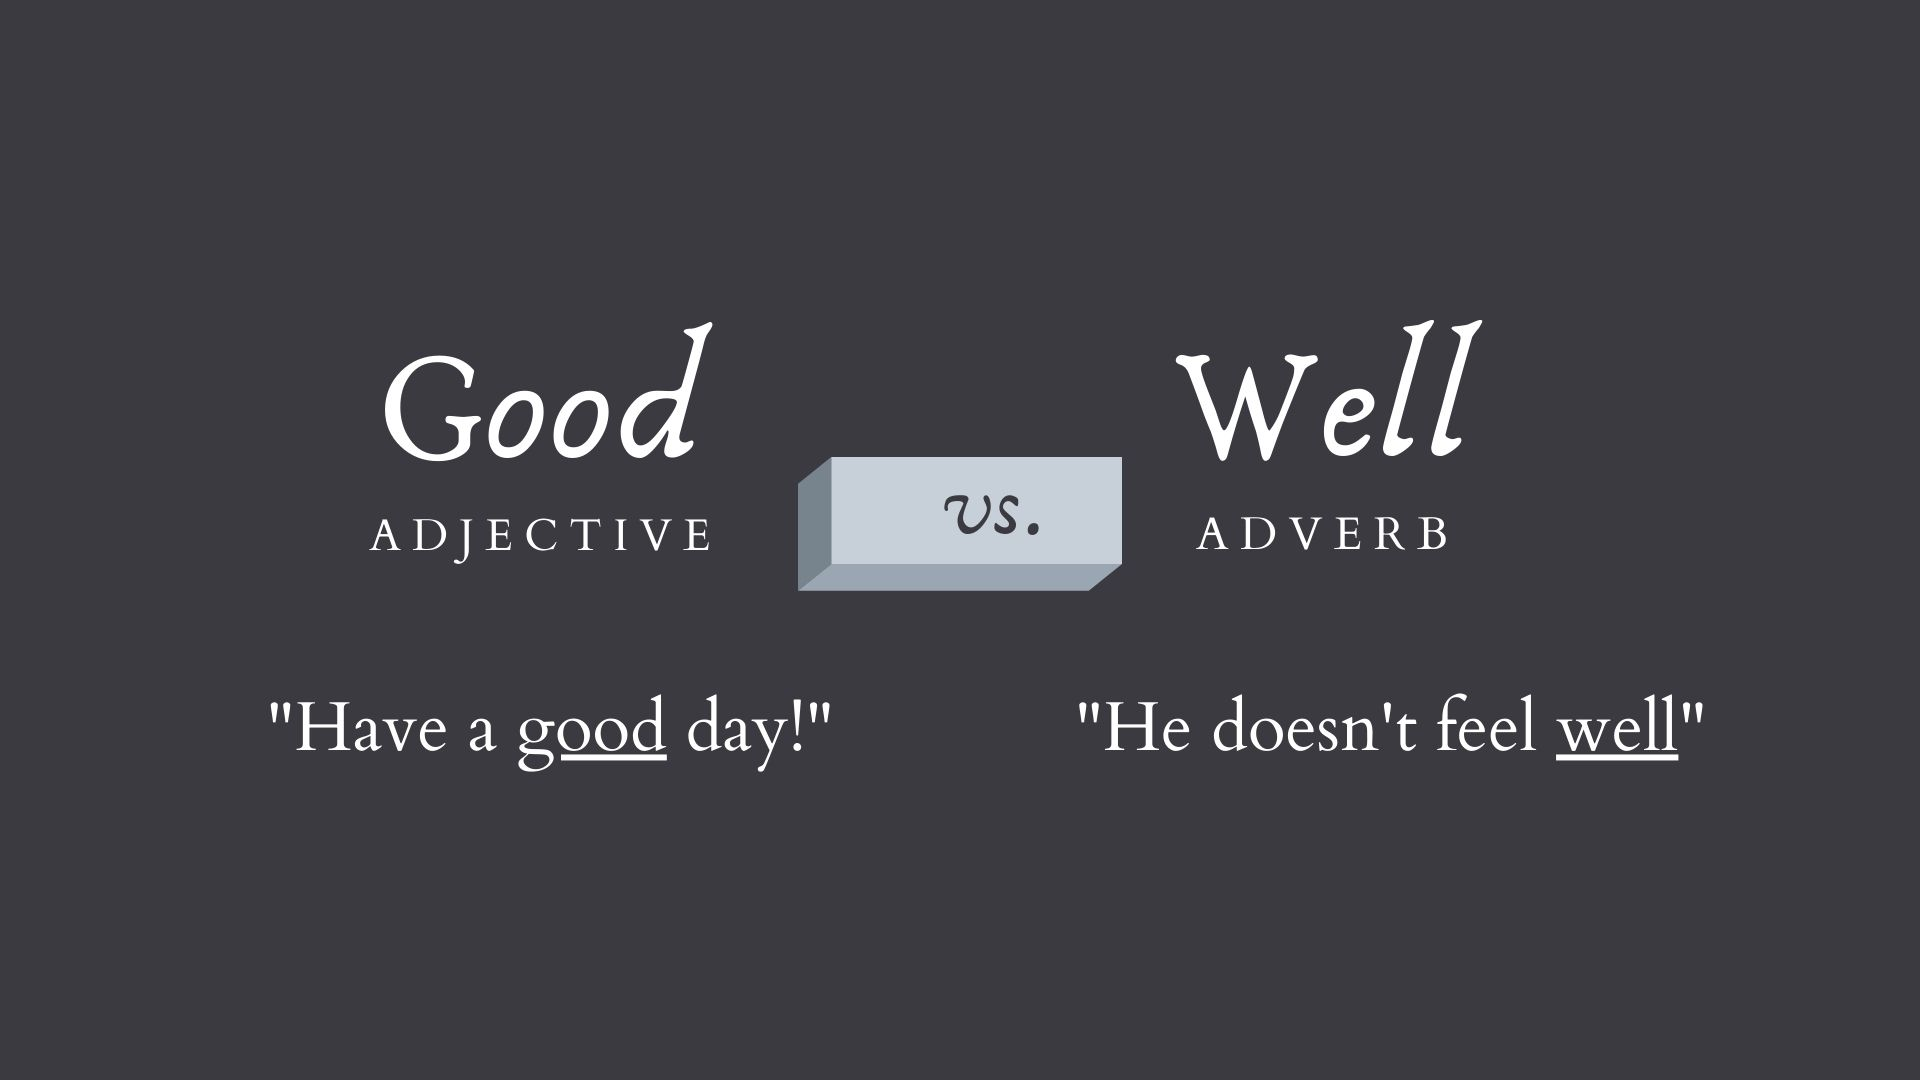 Goof vs. Well: Good is an adjective while Well is an adverb